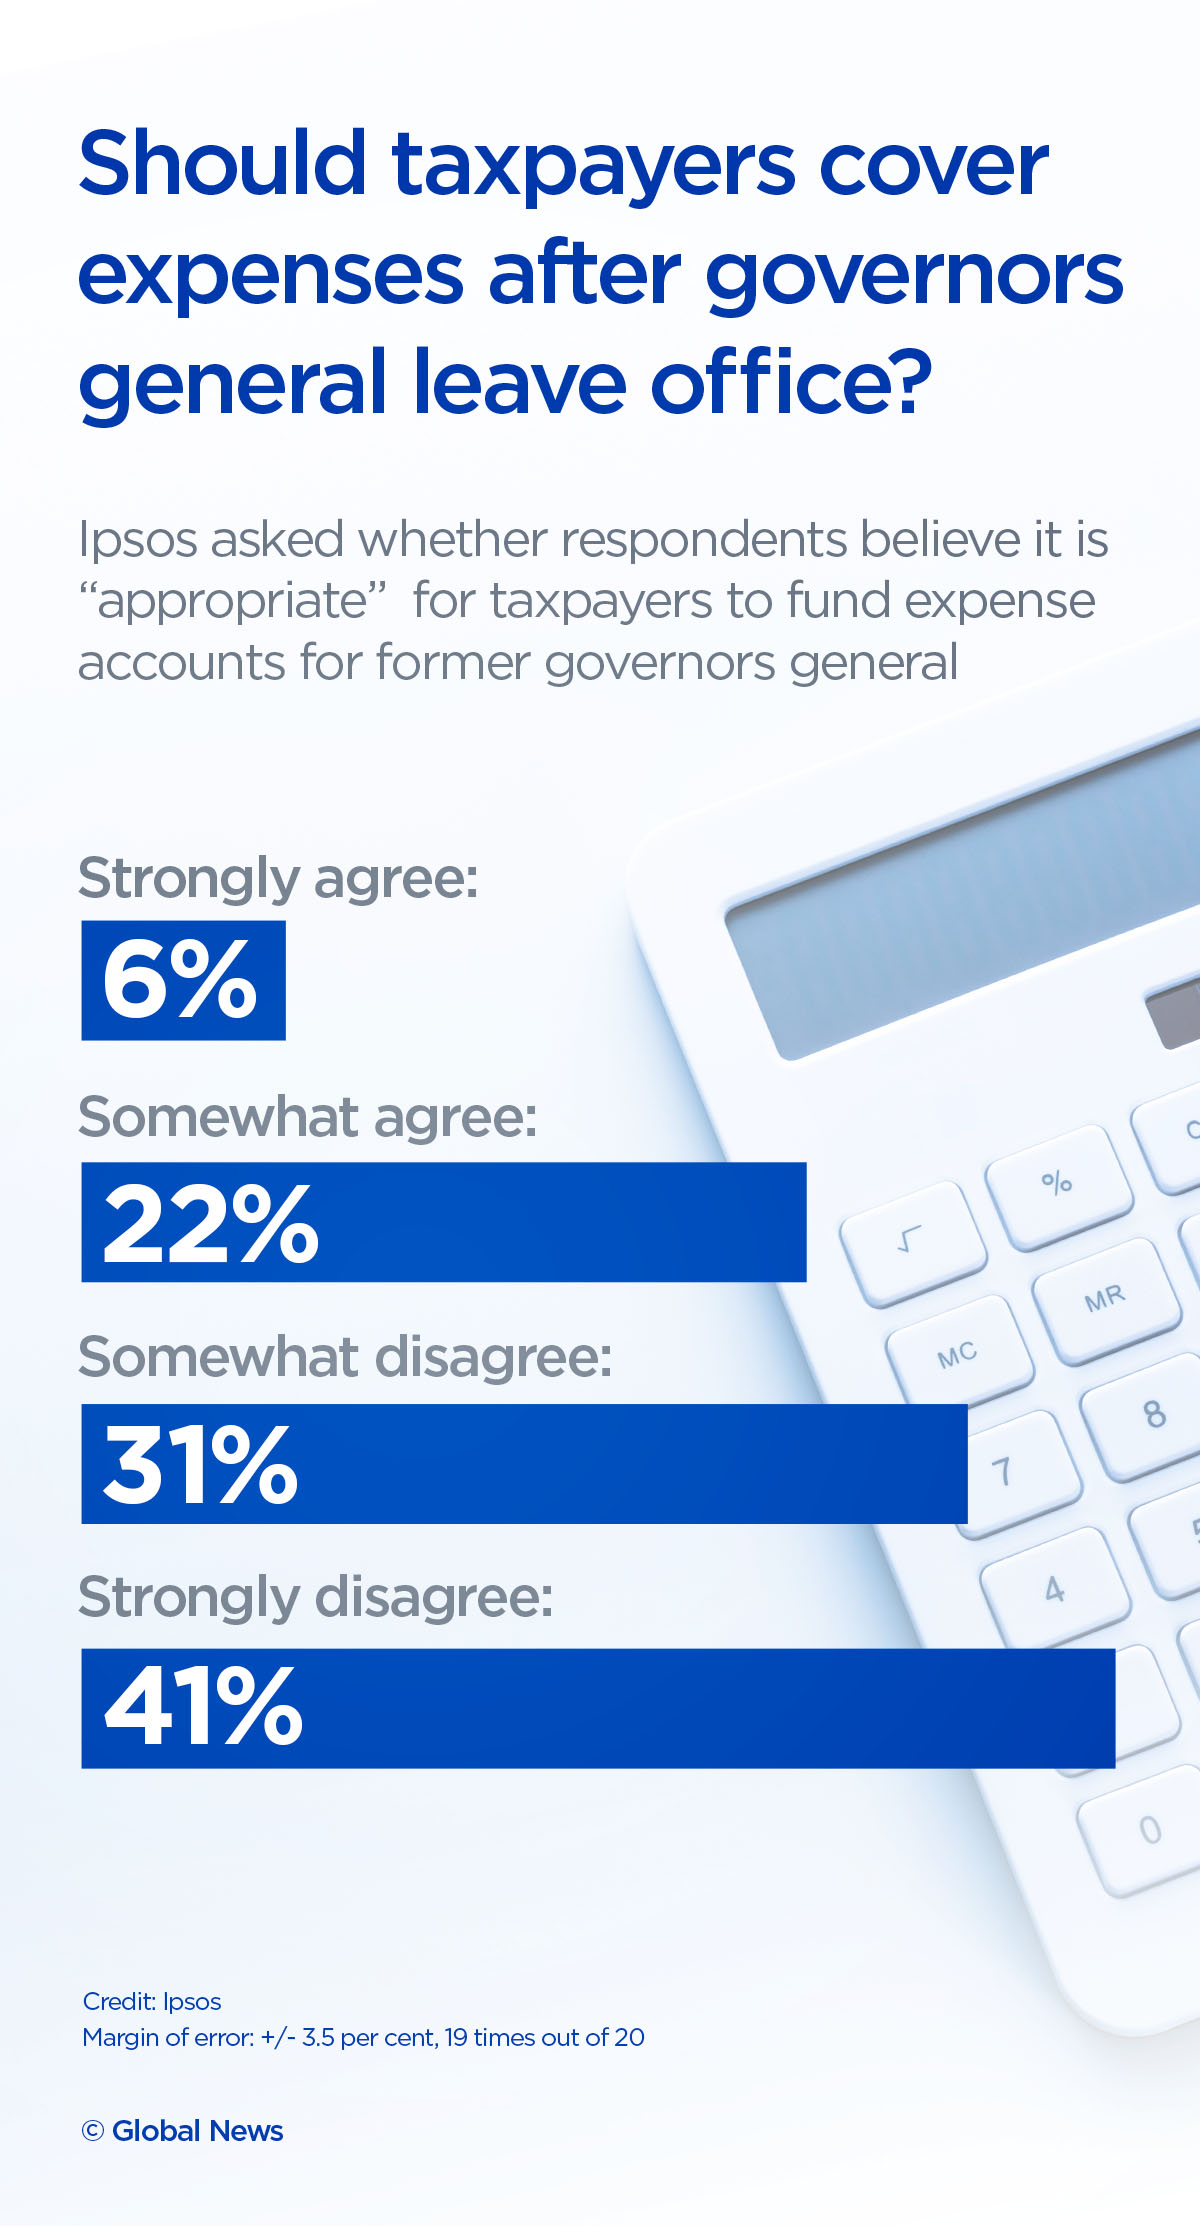 RAW_49RK_CONNOLLY-IPSOS-GG_49RK_INFOGRAPHIC.jpg?w=2048